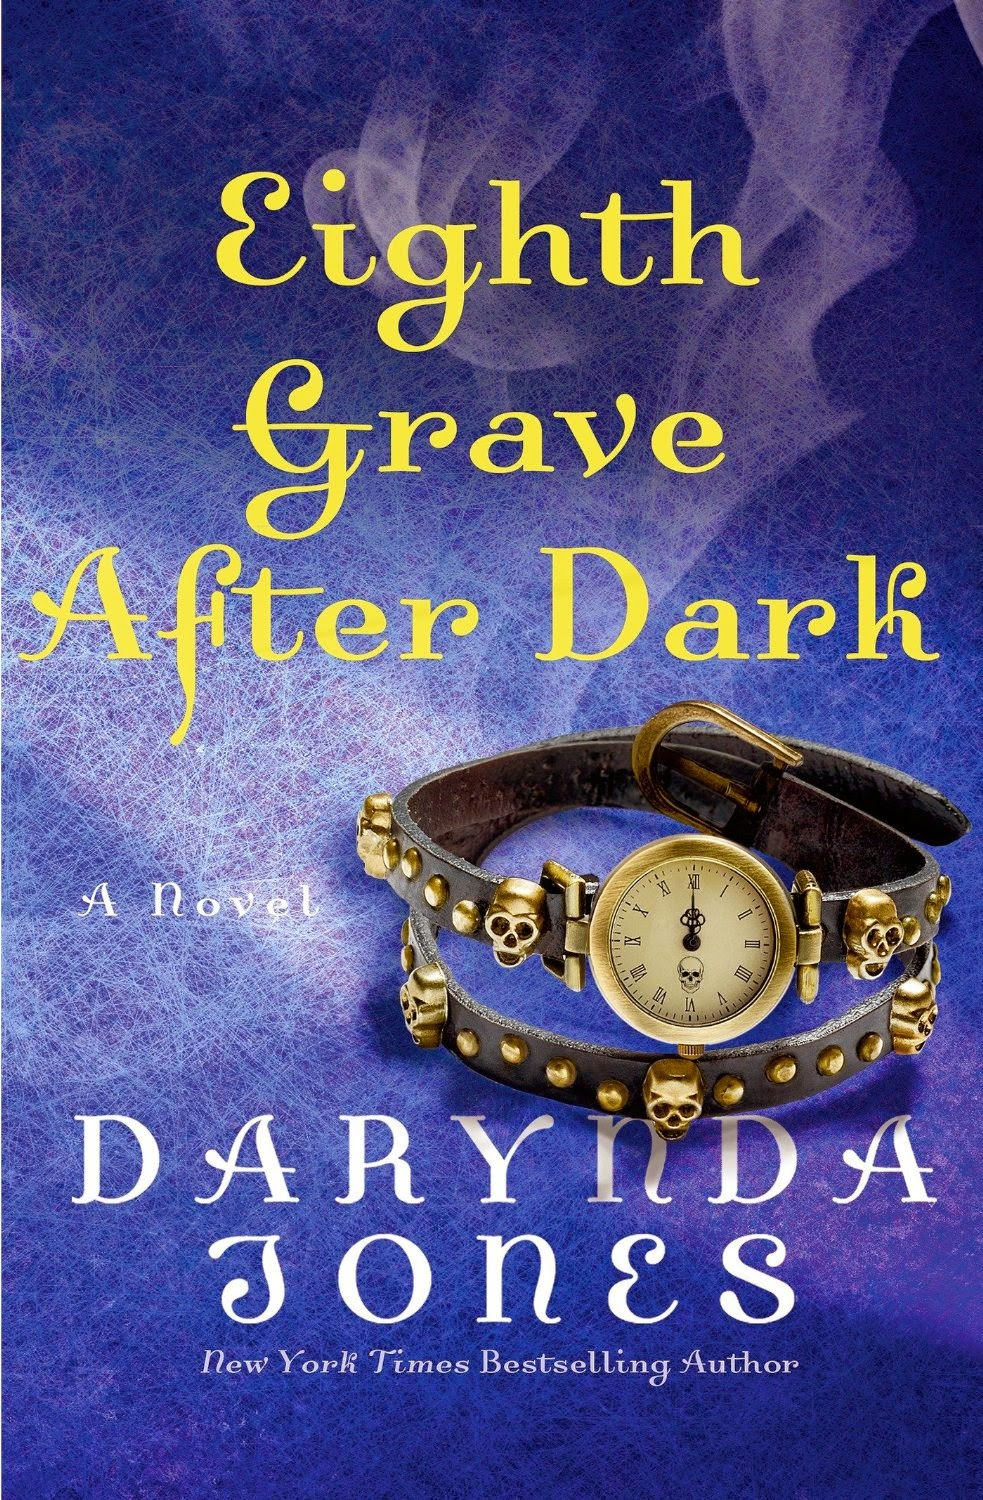 Eighth Grave After Dark (Charley Davidson Series) by Darynda Jones (PNR/UF)